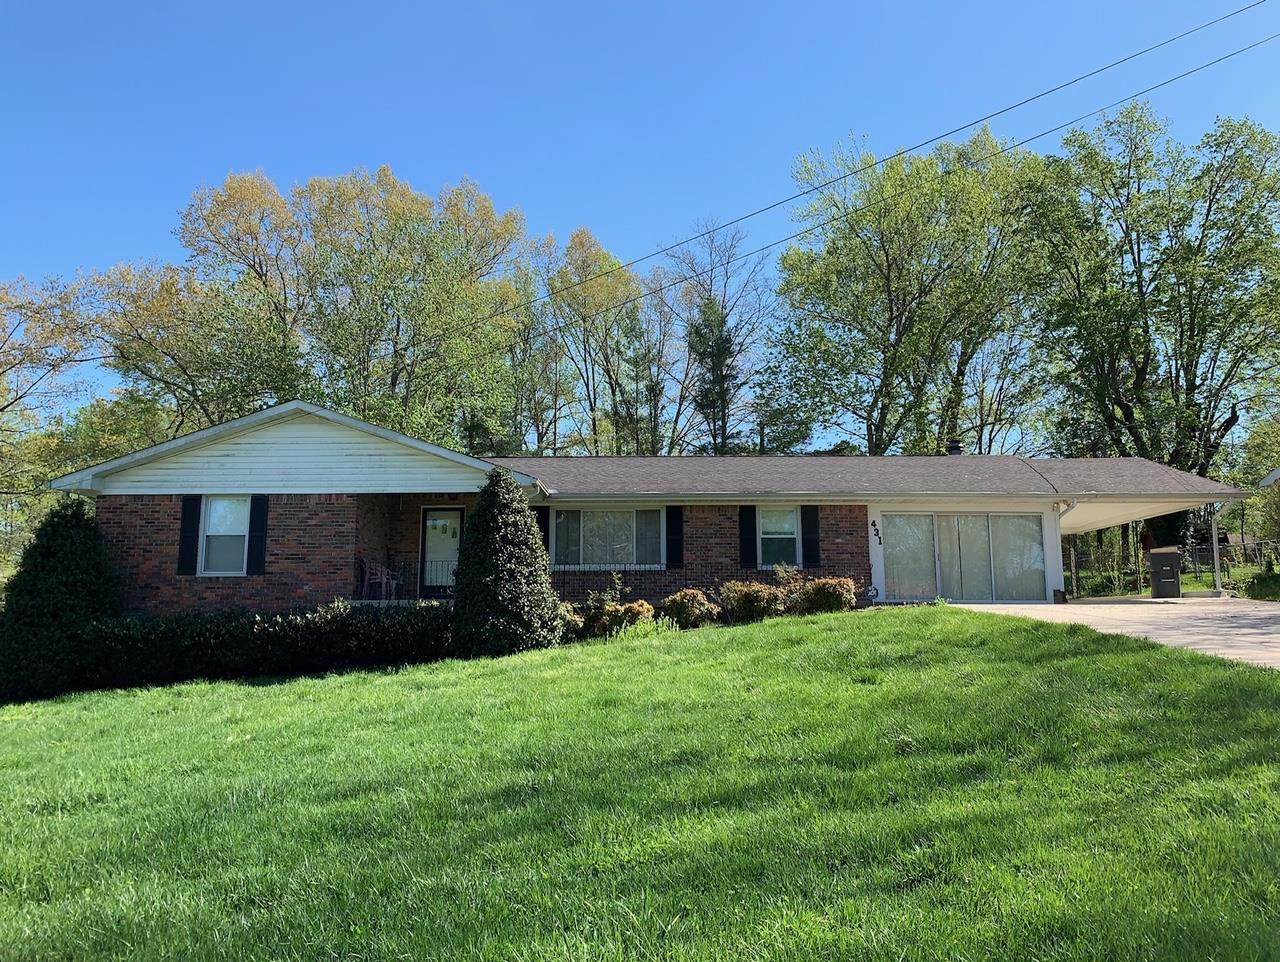 431 Kenway St, Cookeville, TN 38501 - Cookeville, TN real estate listing